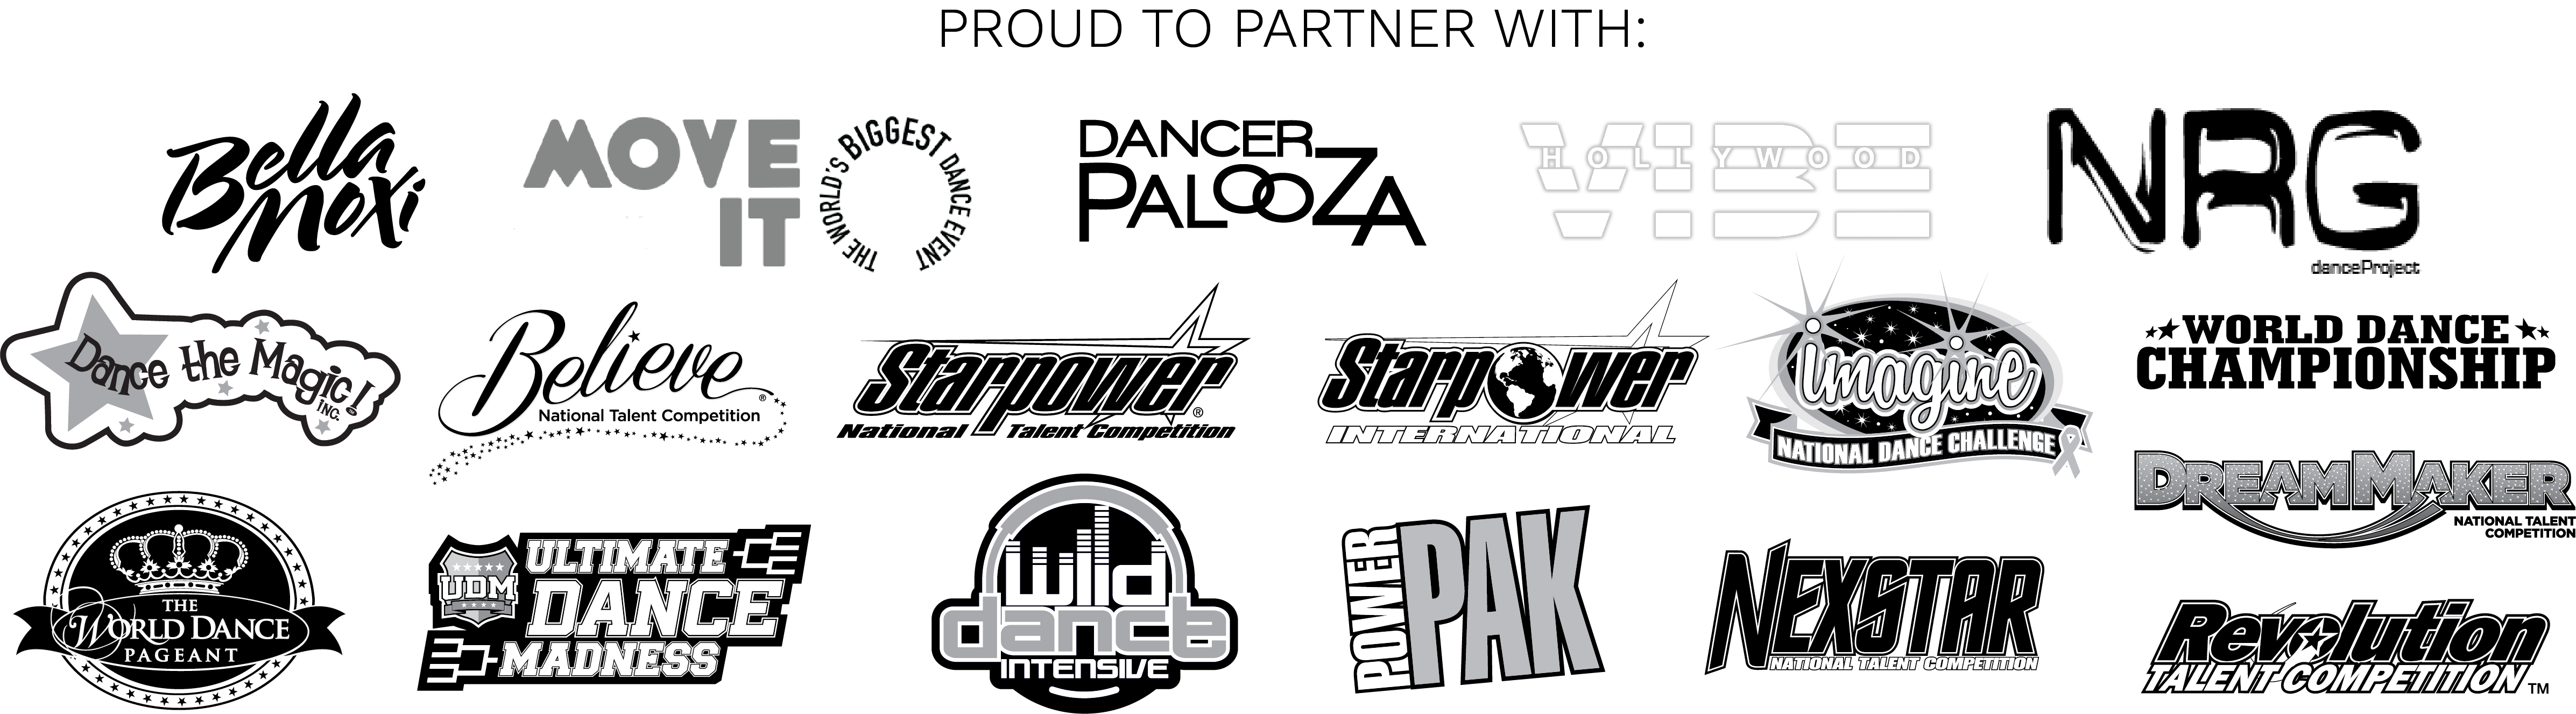 PROUD TO PARTNER WITH THE FOLLOWING SPONSORS